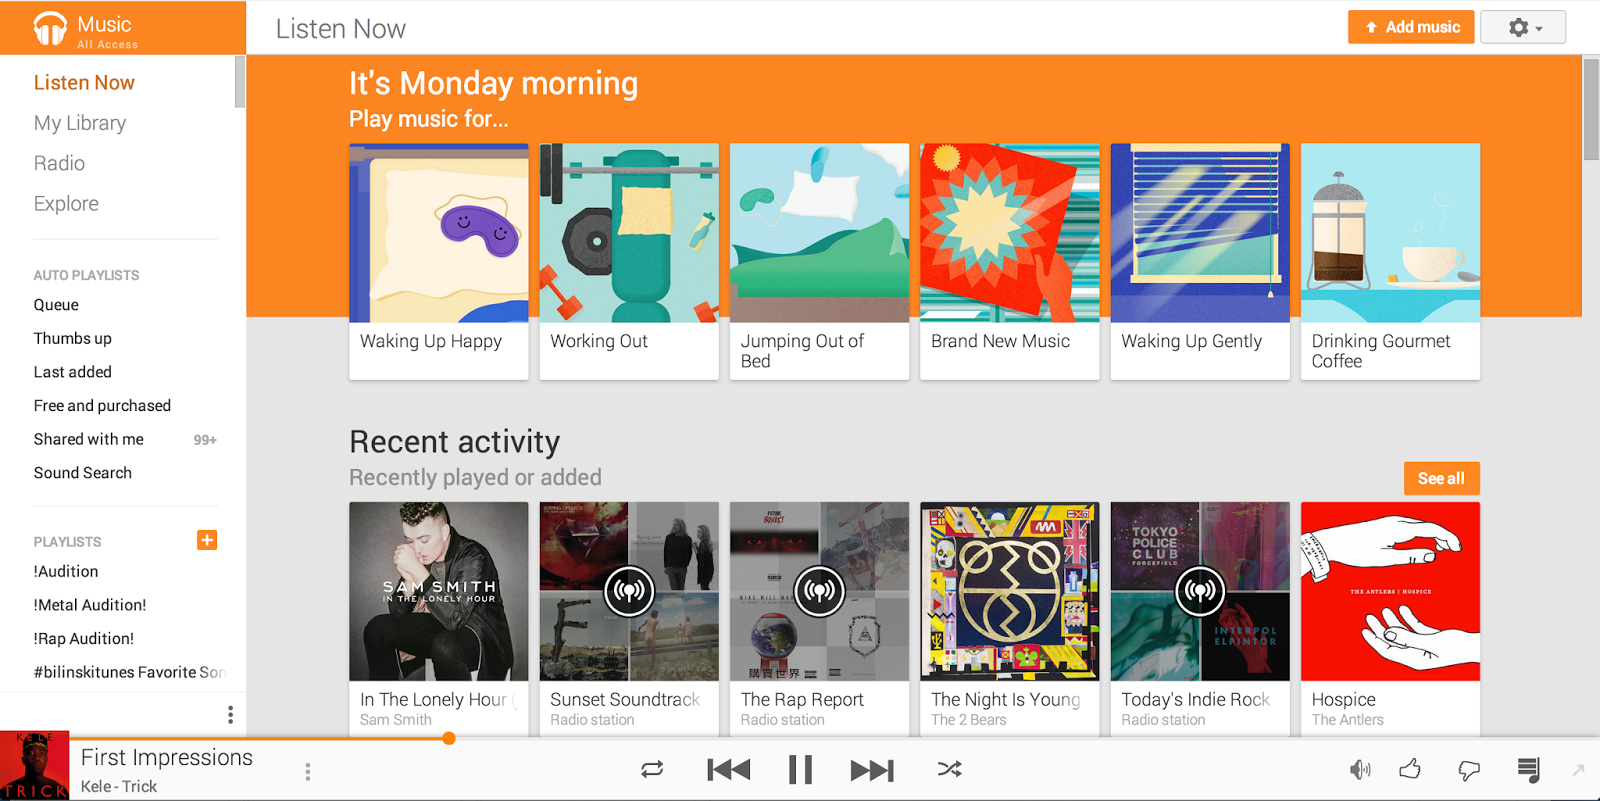 New update to Google Play Music App Brings Material Design and 'Activity-Based Music Station' Feature